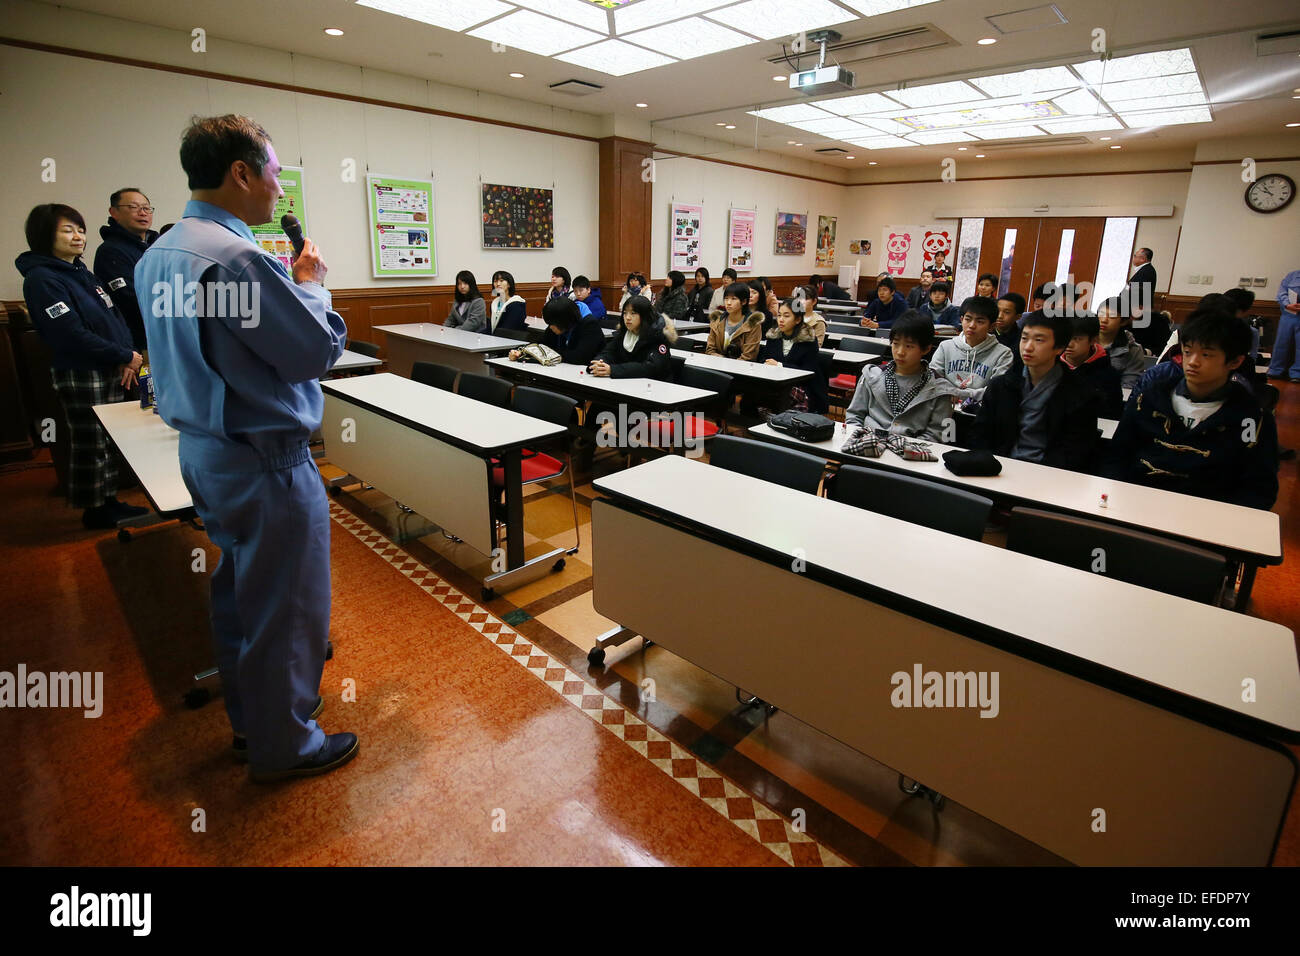 Joc Elite Academy Students Group February 1 2015 Students Of The Stock Photo Alamy